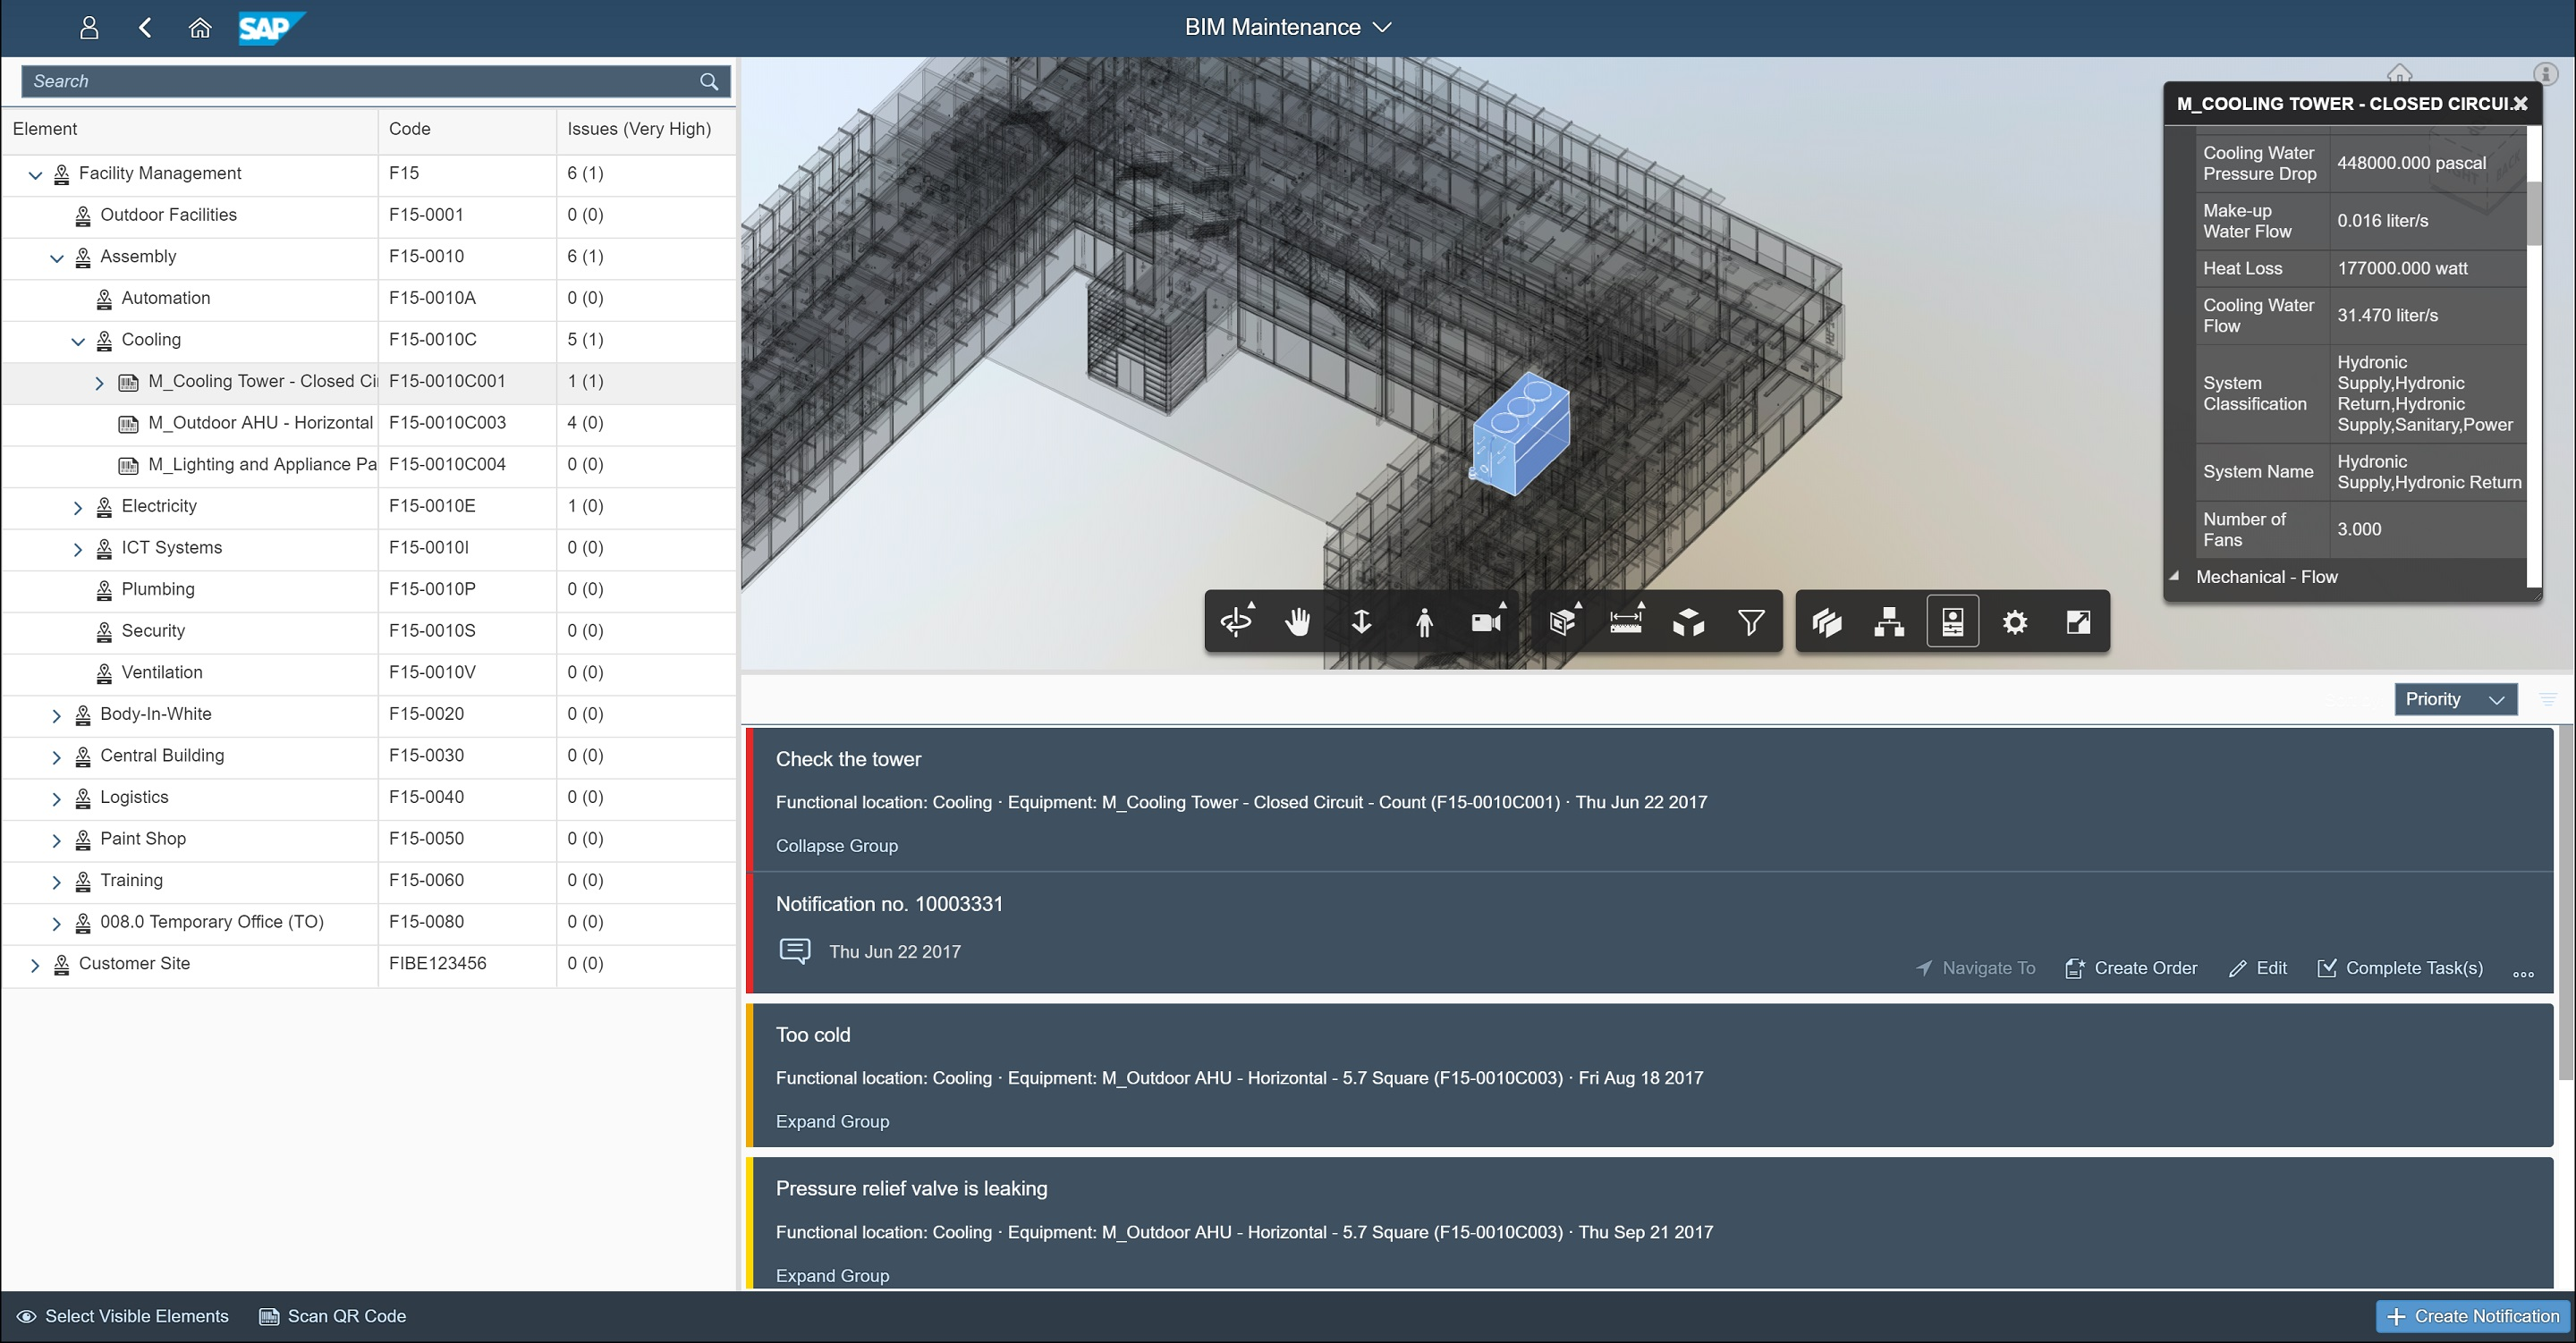 INTELSYS.build BIM maintenance v2